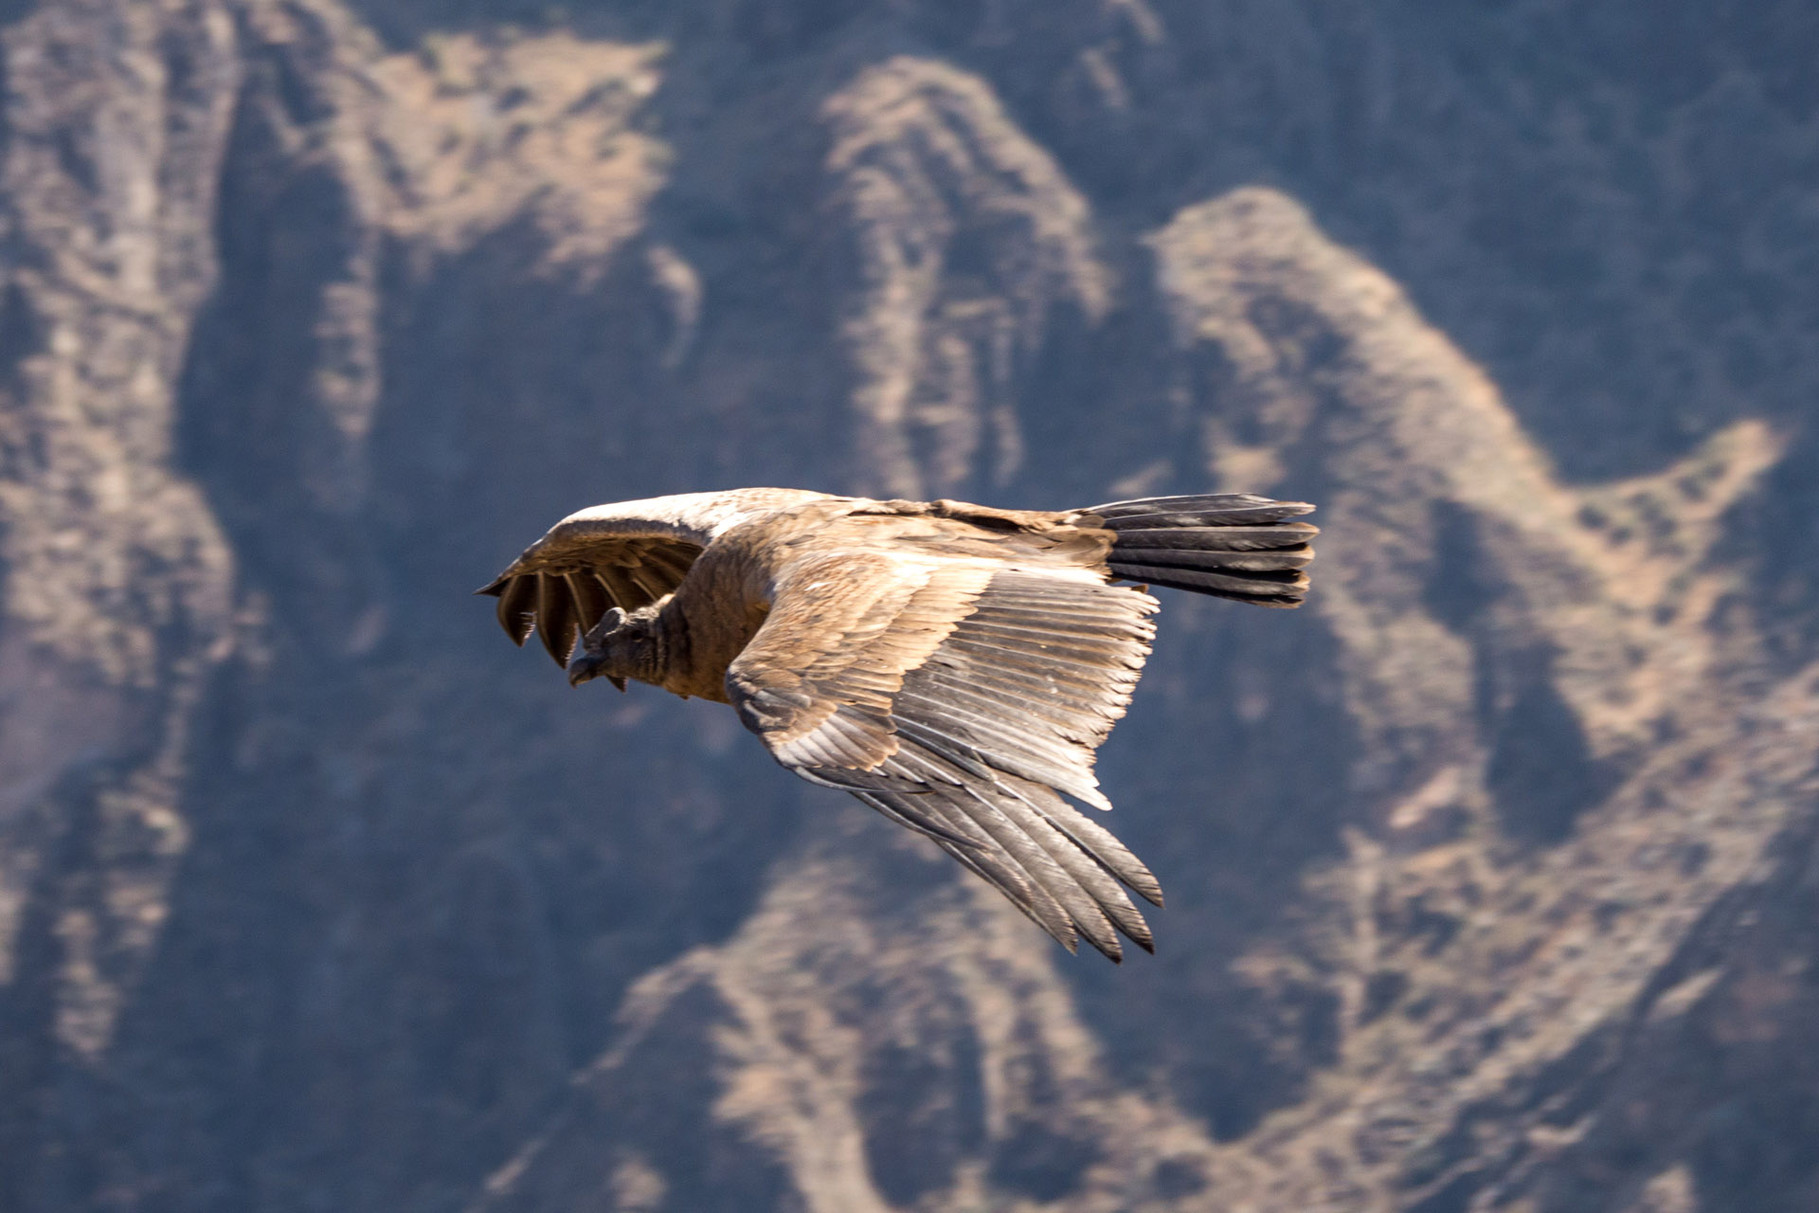 Majestetic Condors at Colca canyon, Mirador Cruz del Condor